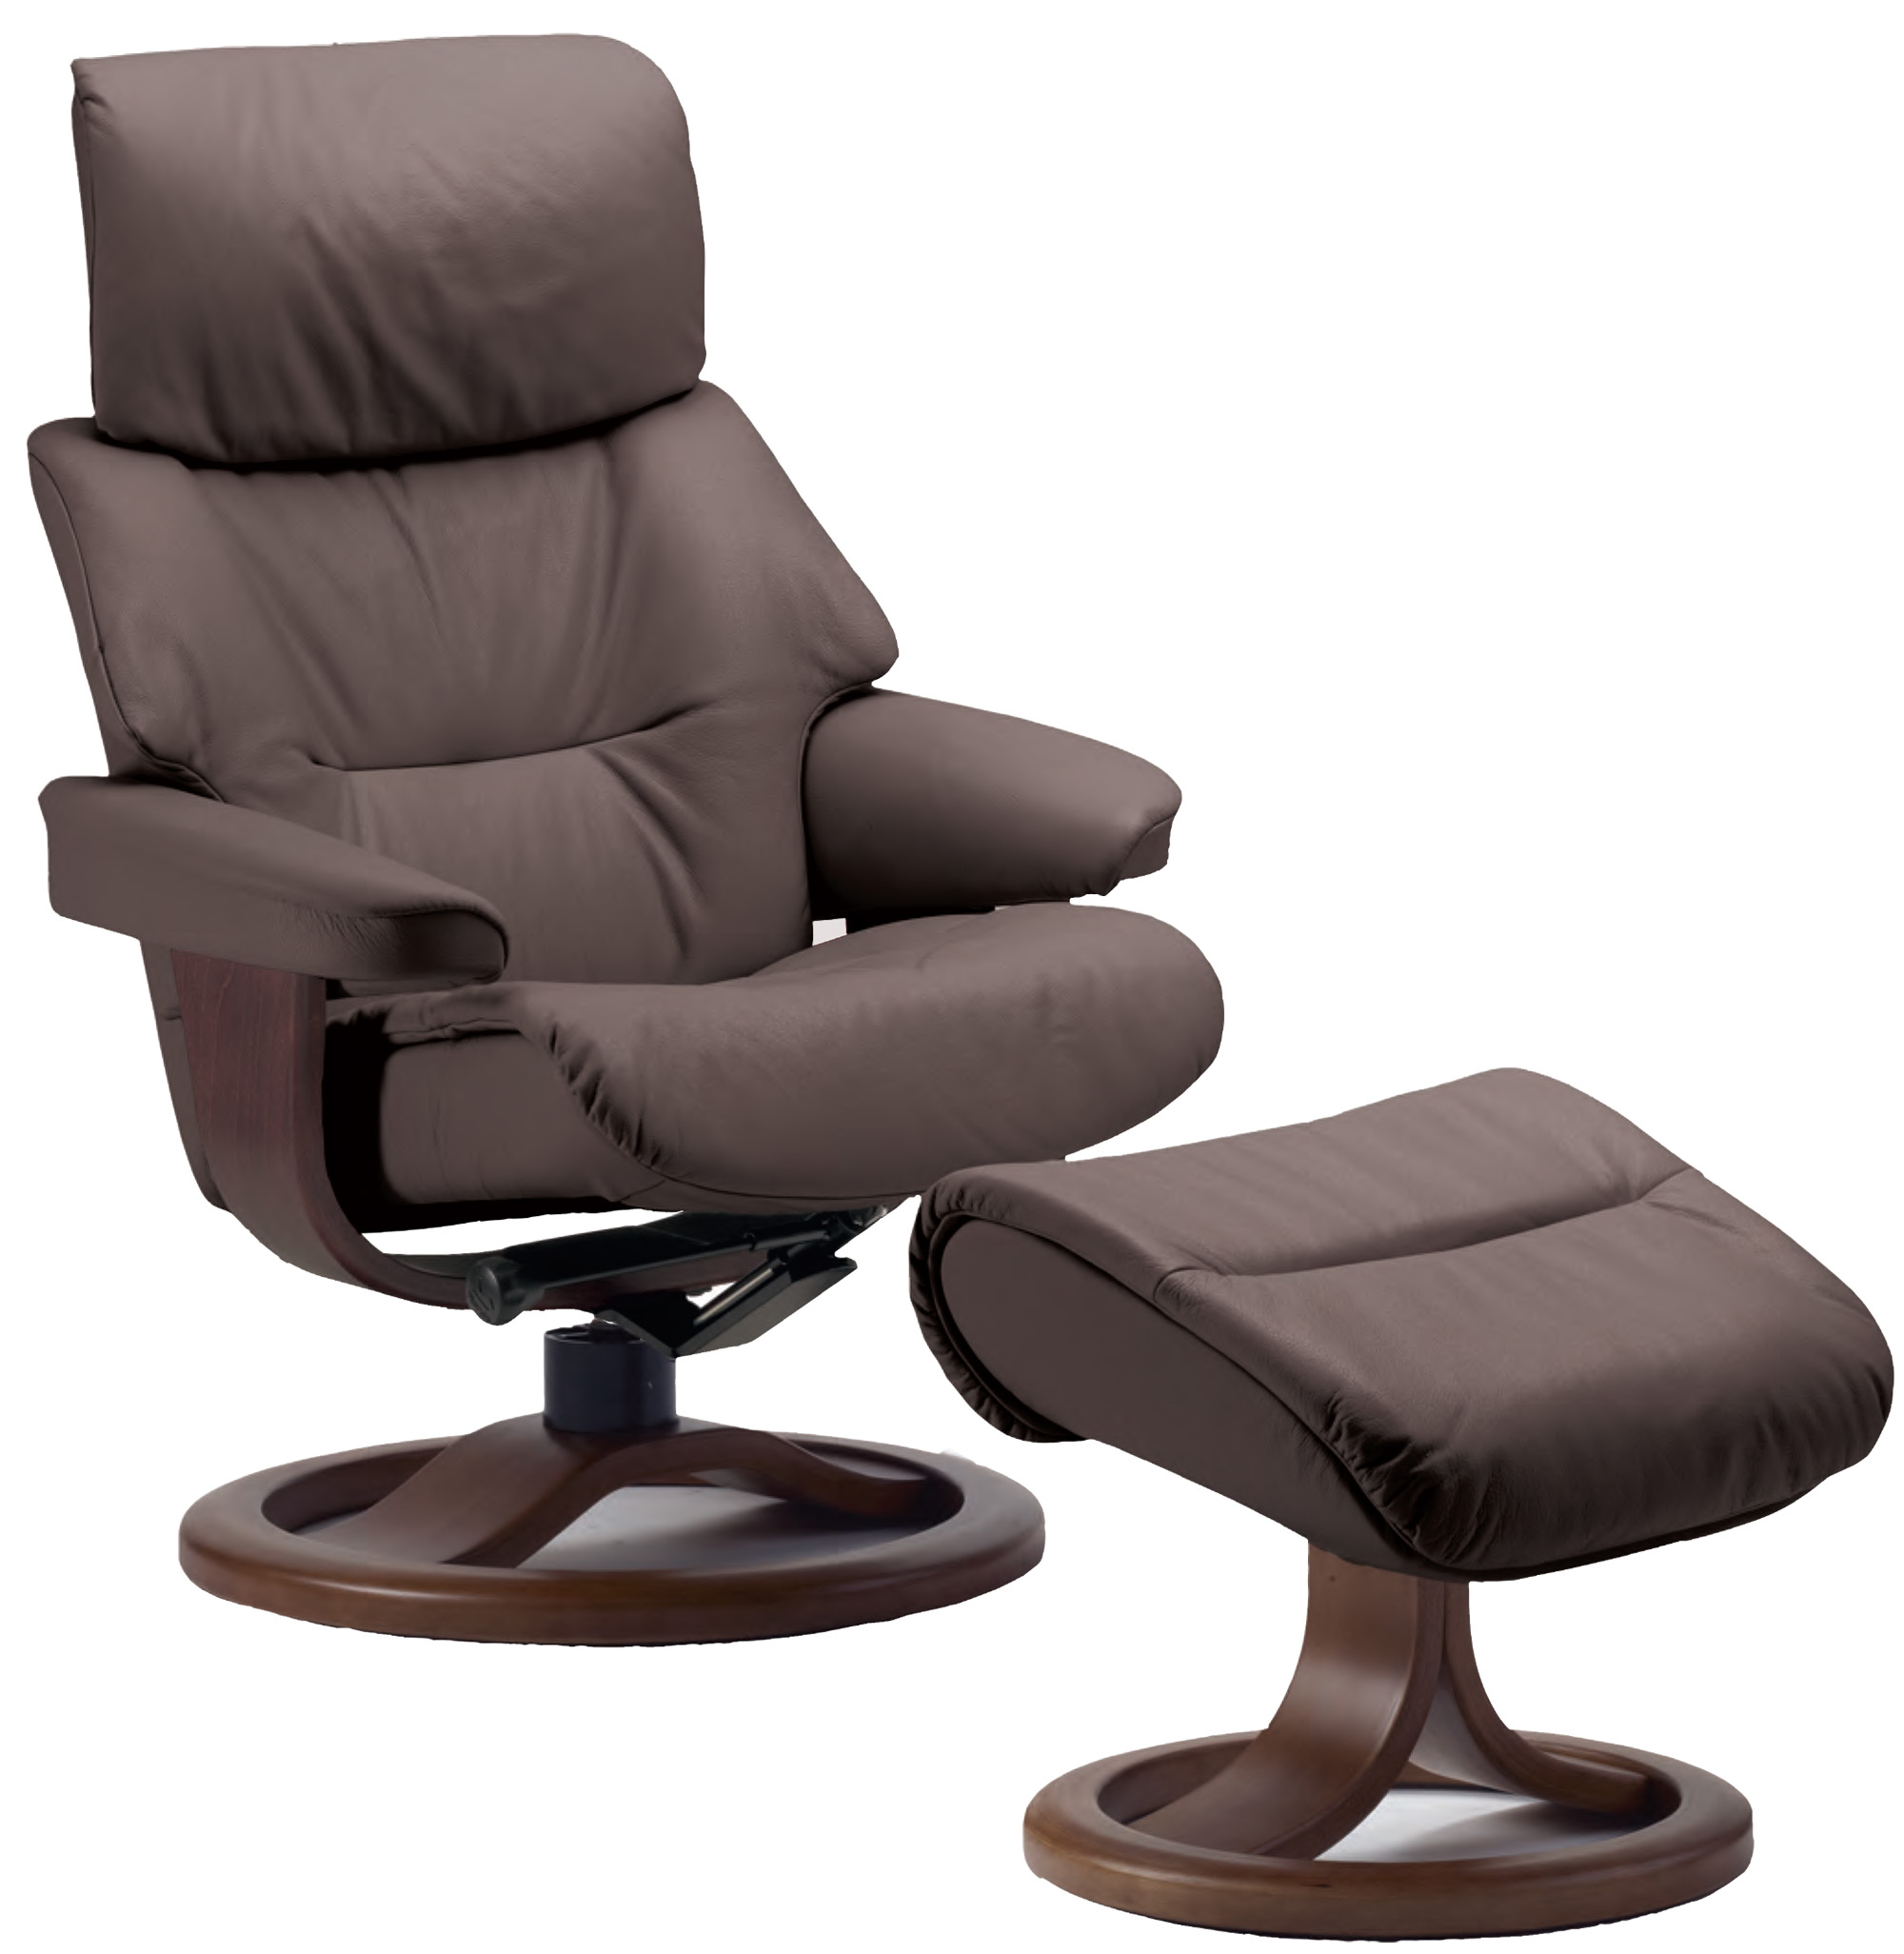 leather ethan recliner christopher tufted today knight chair garden free product by home overstock shipping bonded